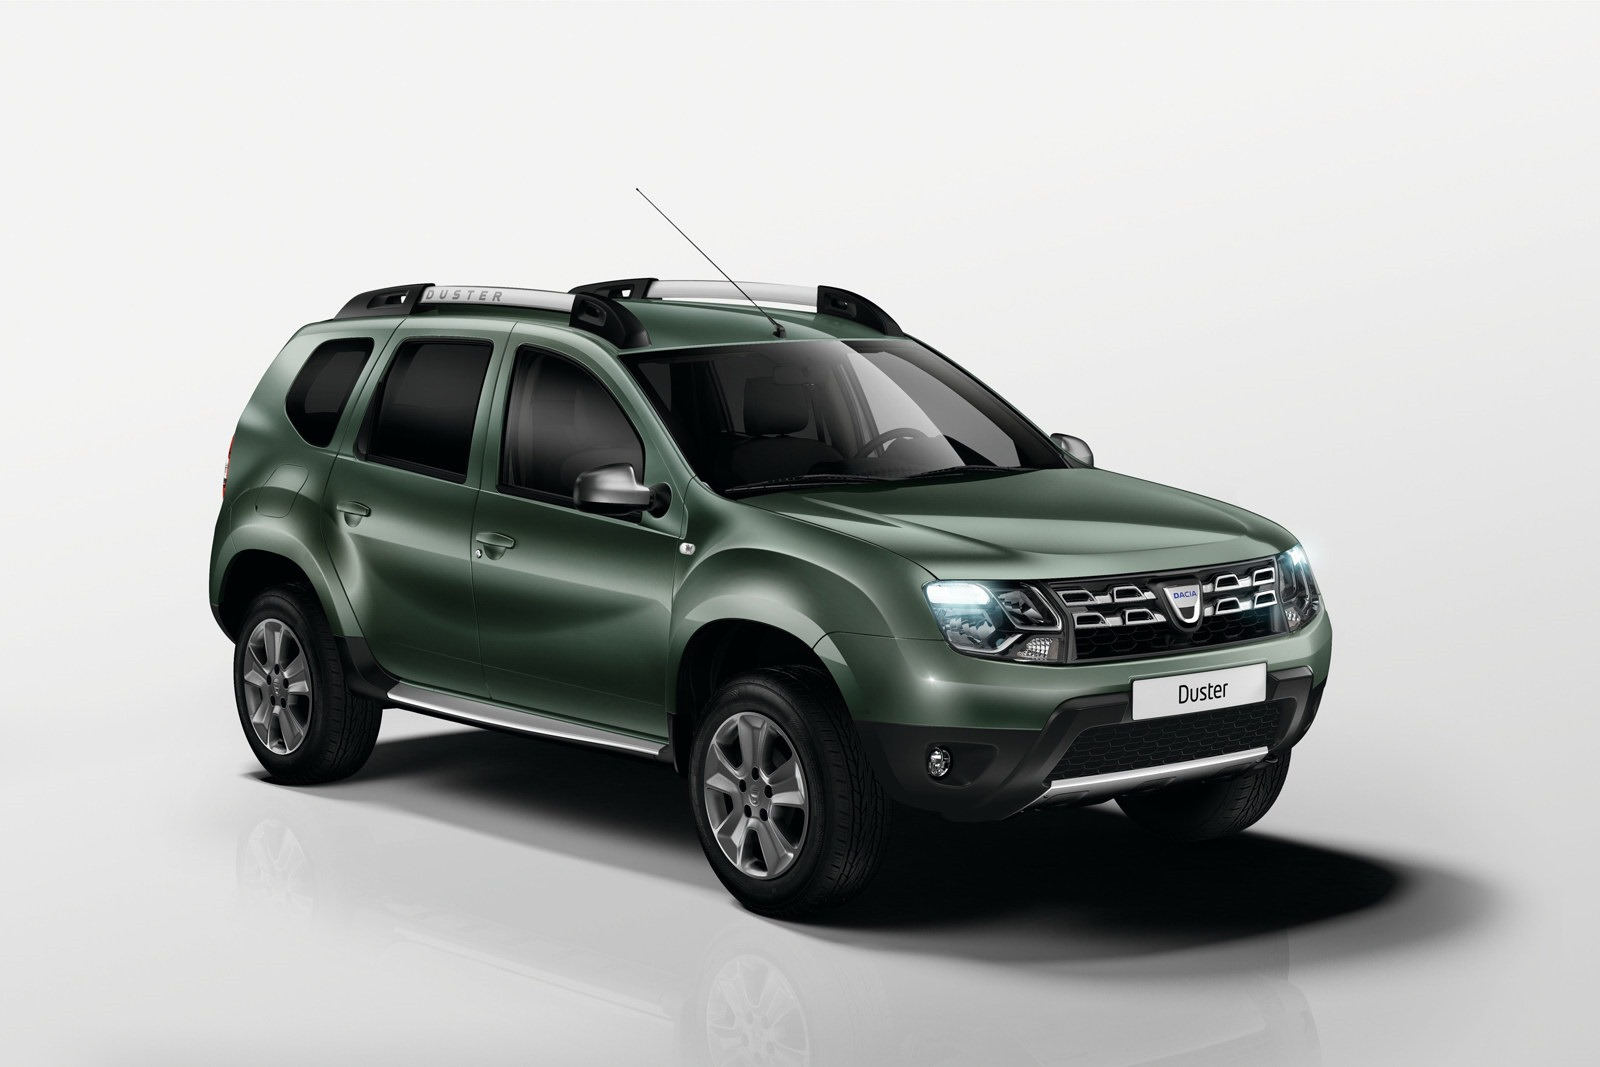 New dacia duster 1 2 tce detailed video autoevolution for Interieur duster 2018